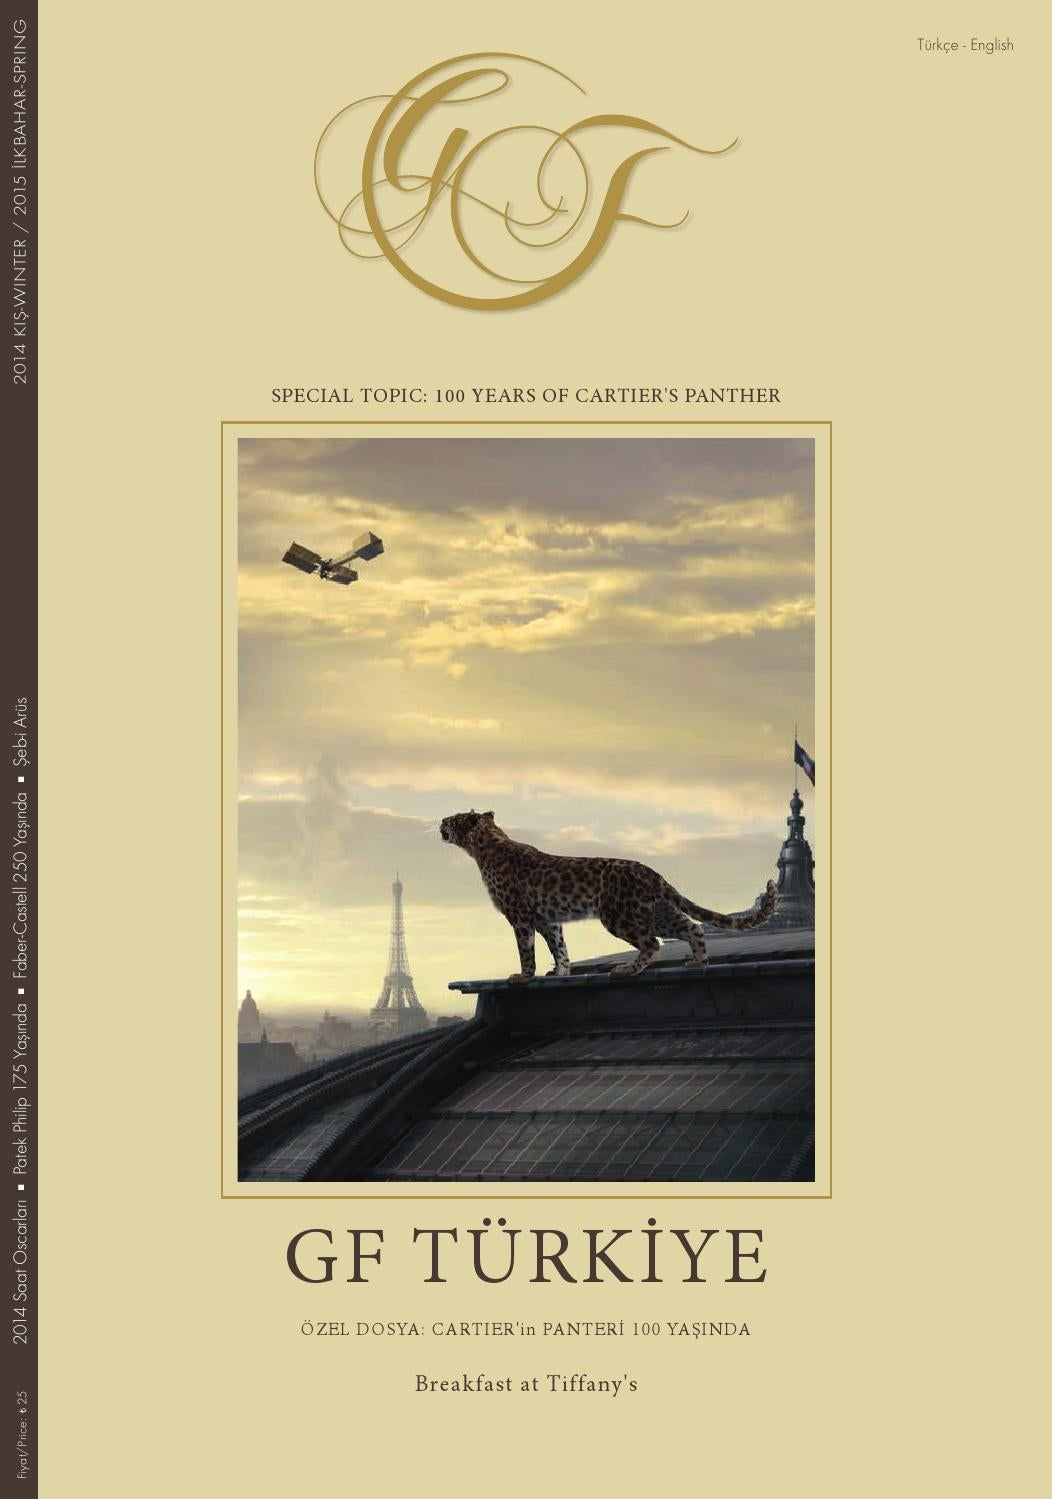 Gf Genuss Feinsinn Edition Turkiye For Connaisseurs Winter